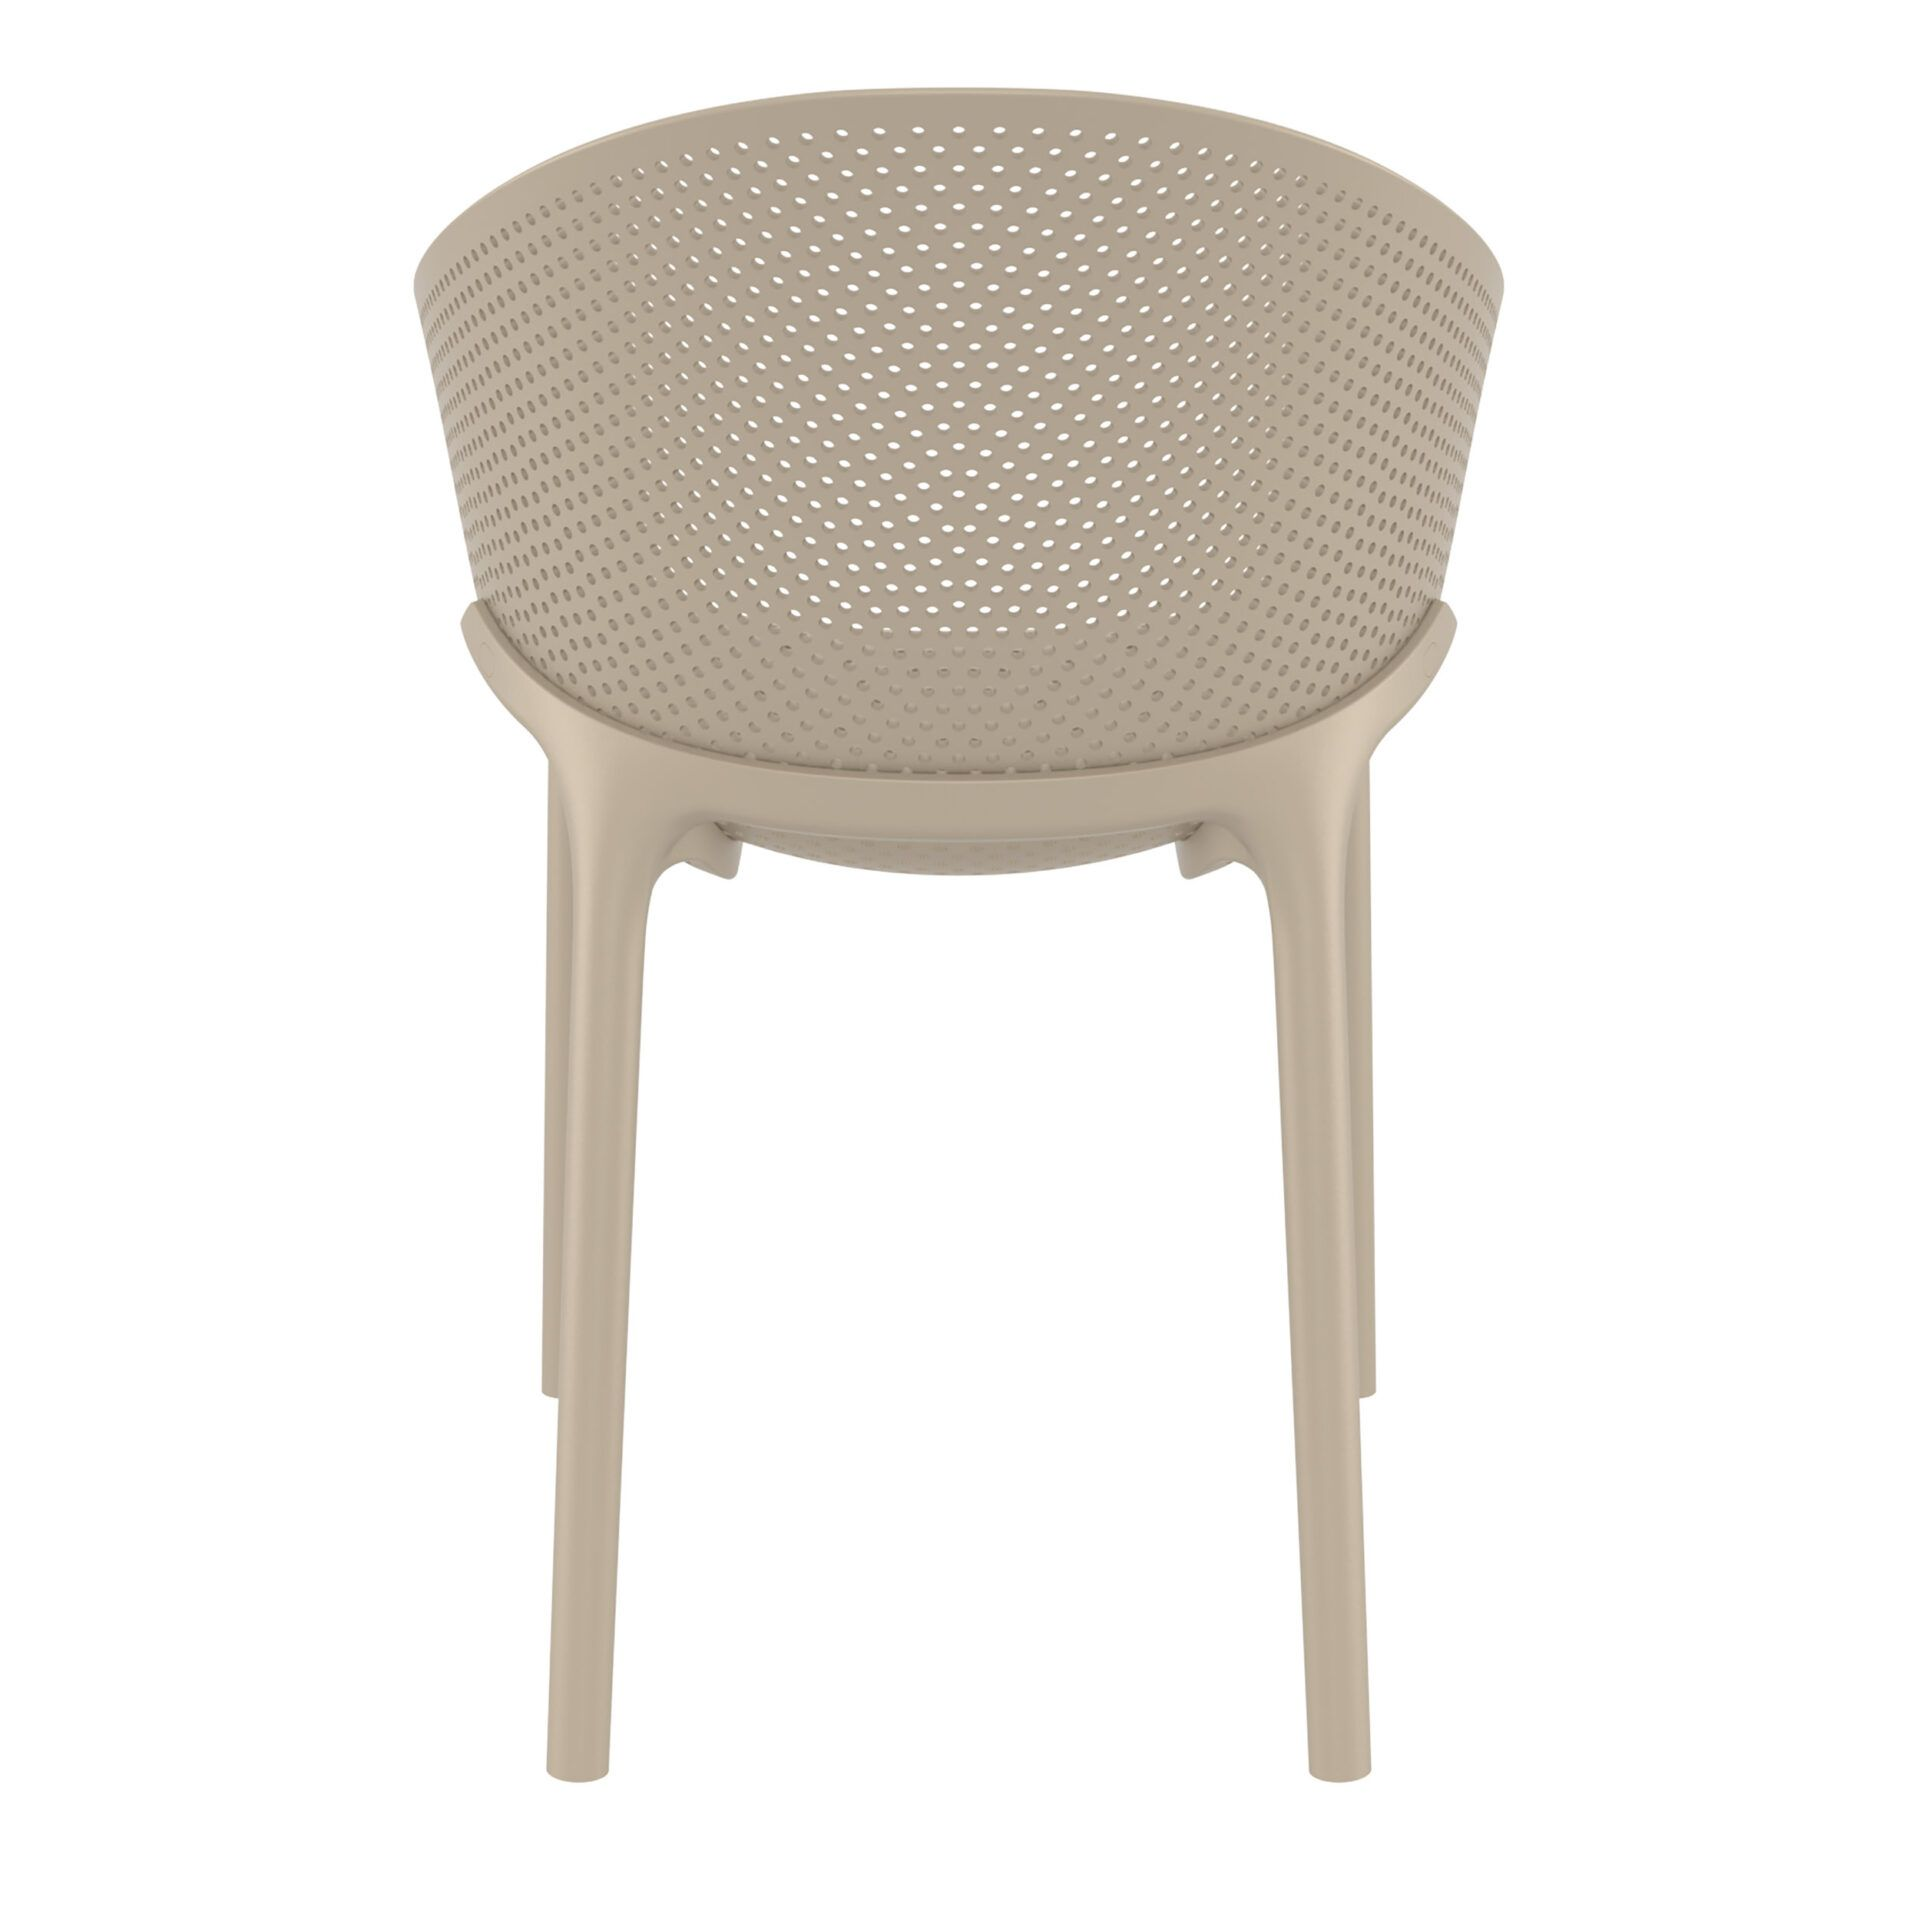 outdoor seating polypropylene sky chair taupe back